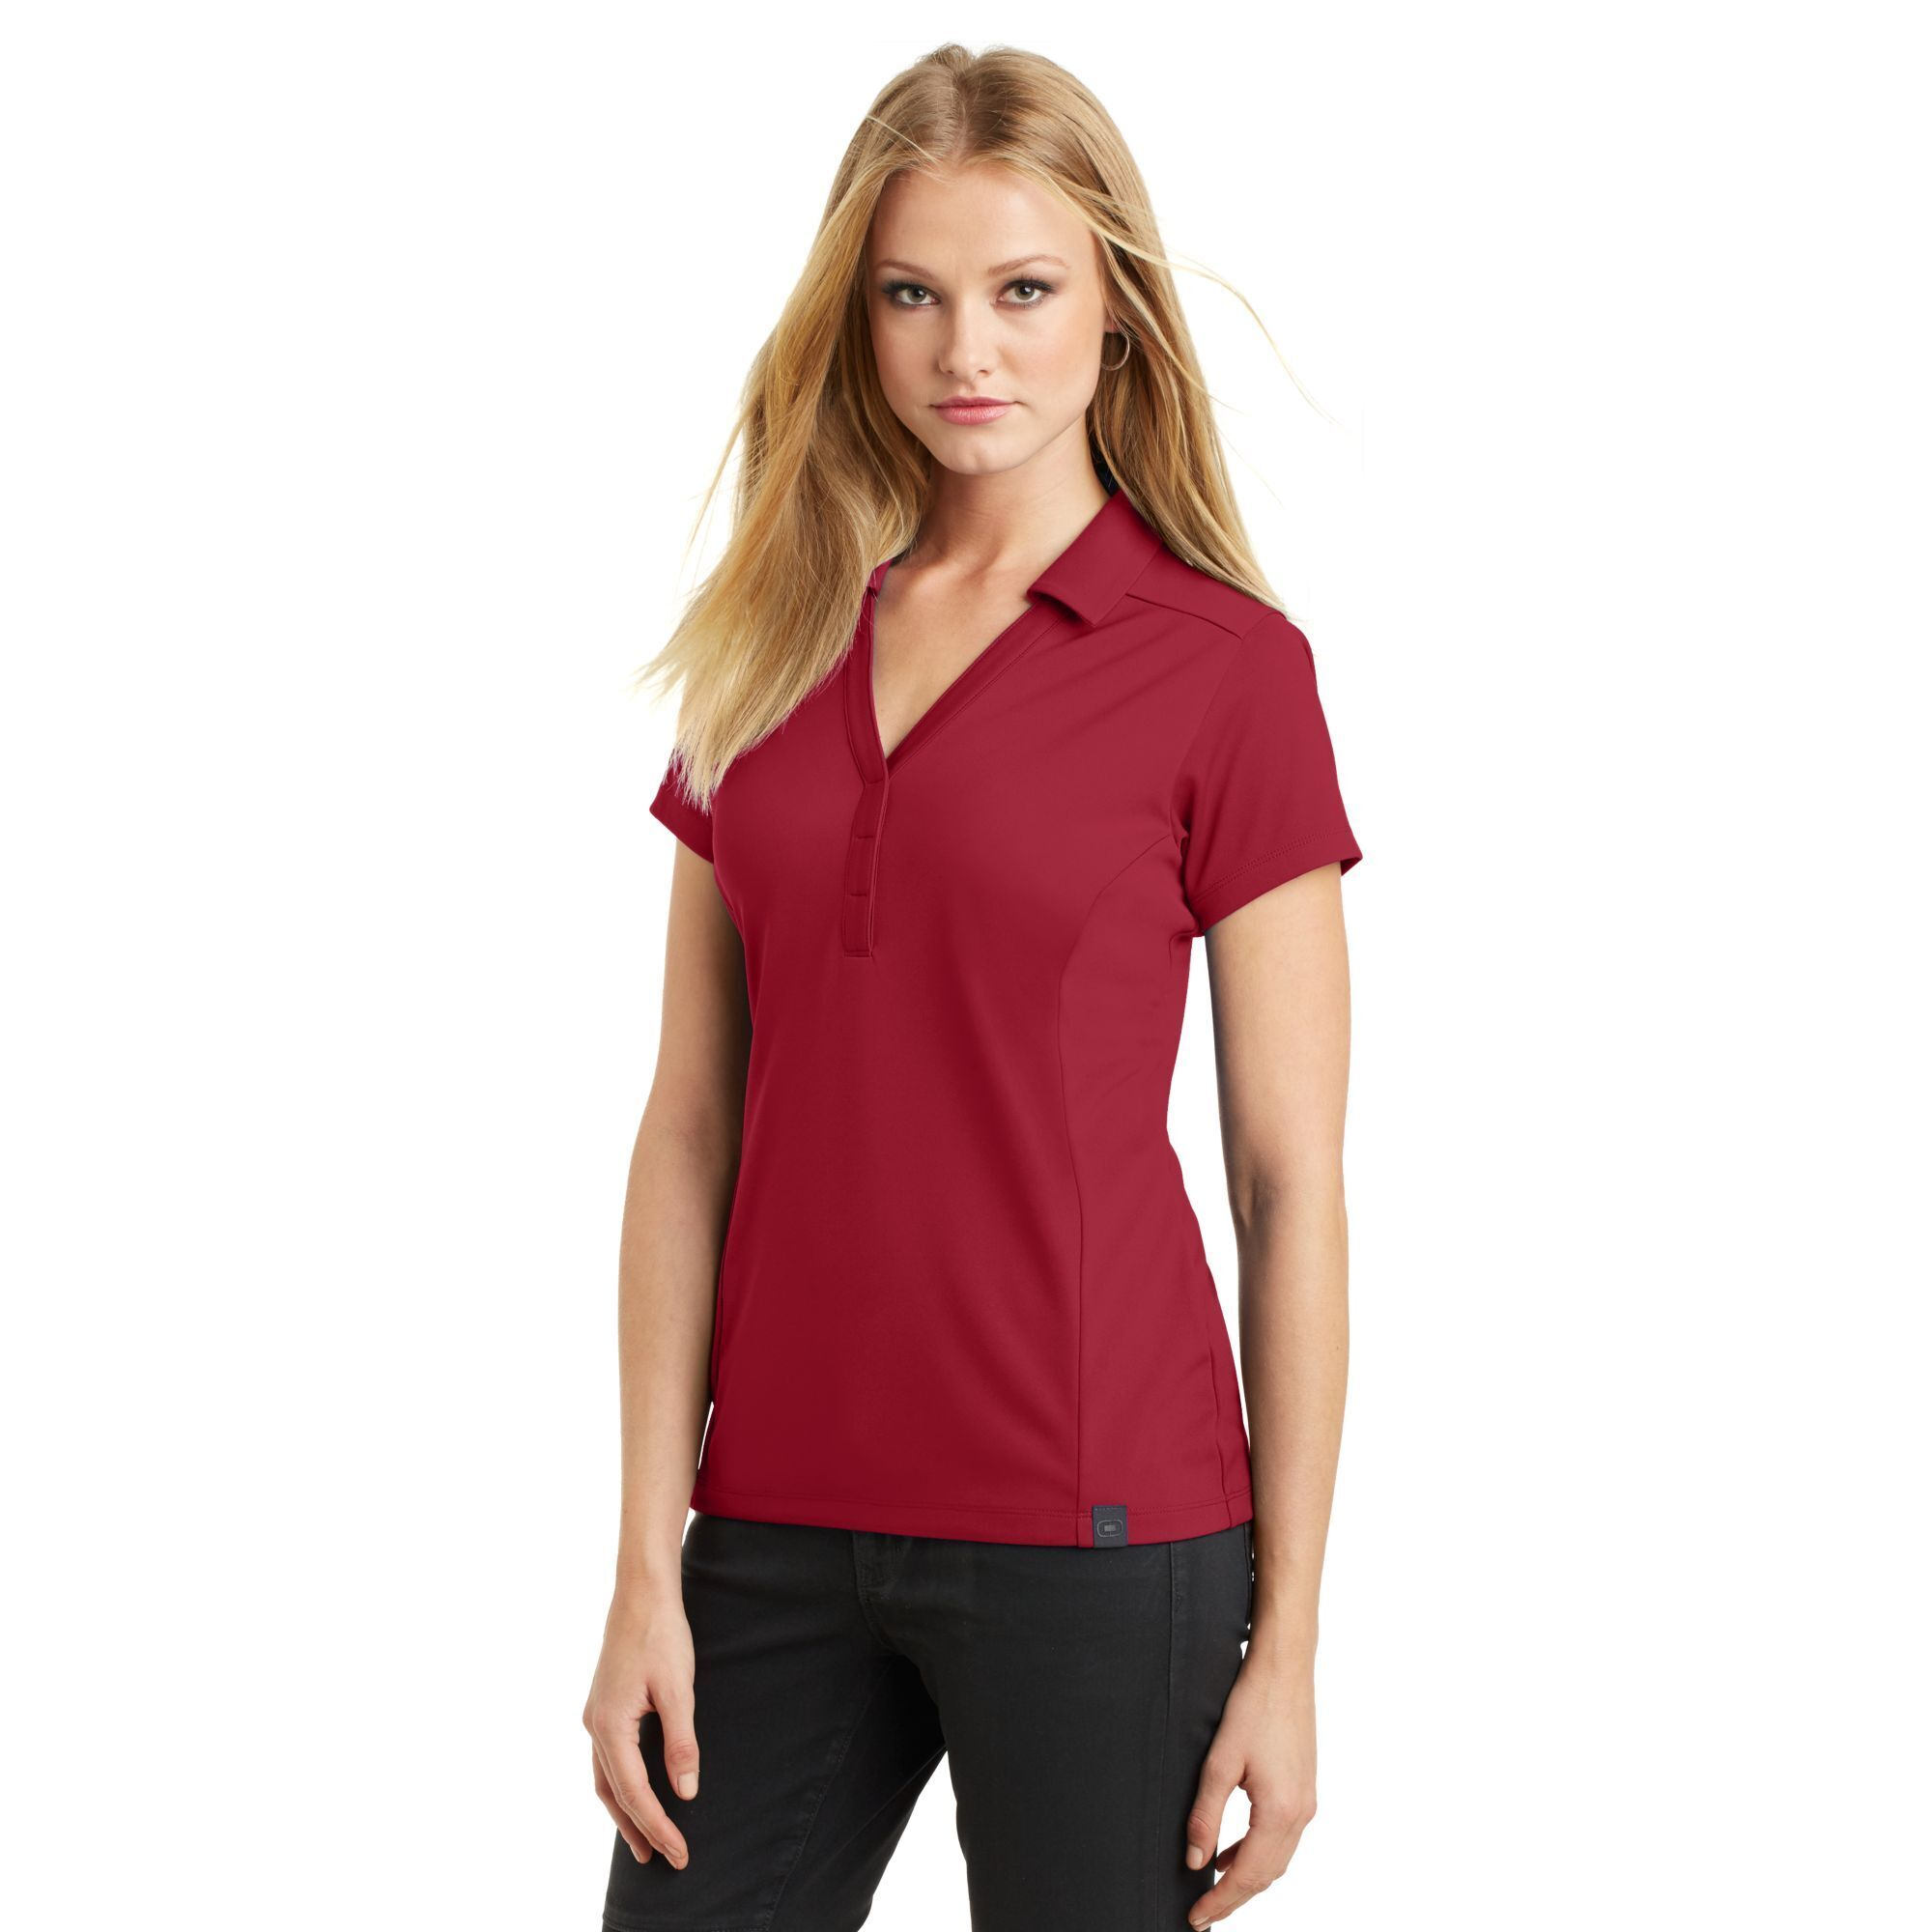 OGIO® Framework Performance Ladies' Pique Polo